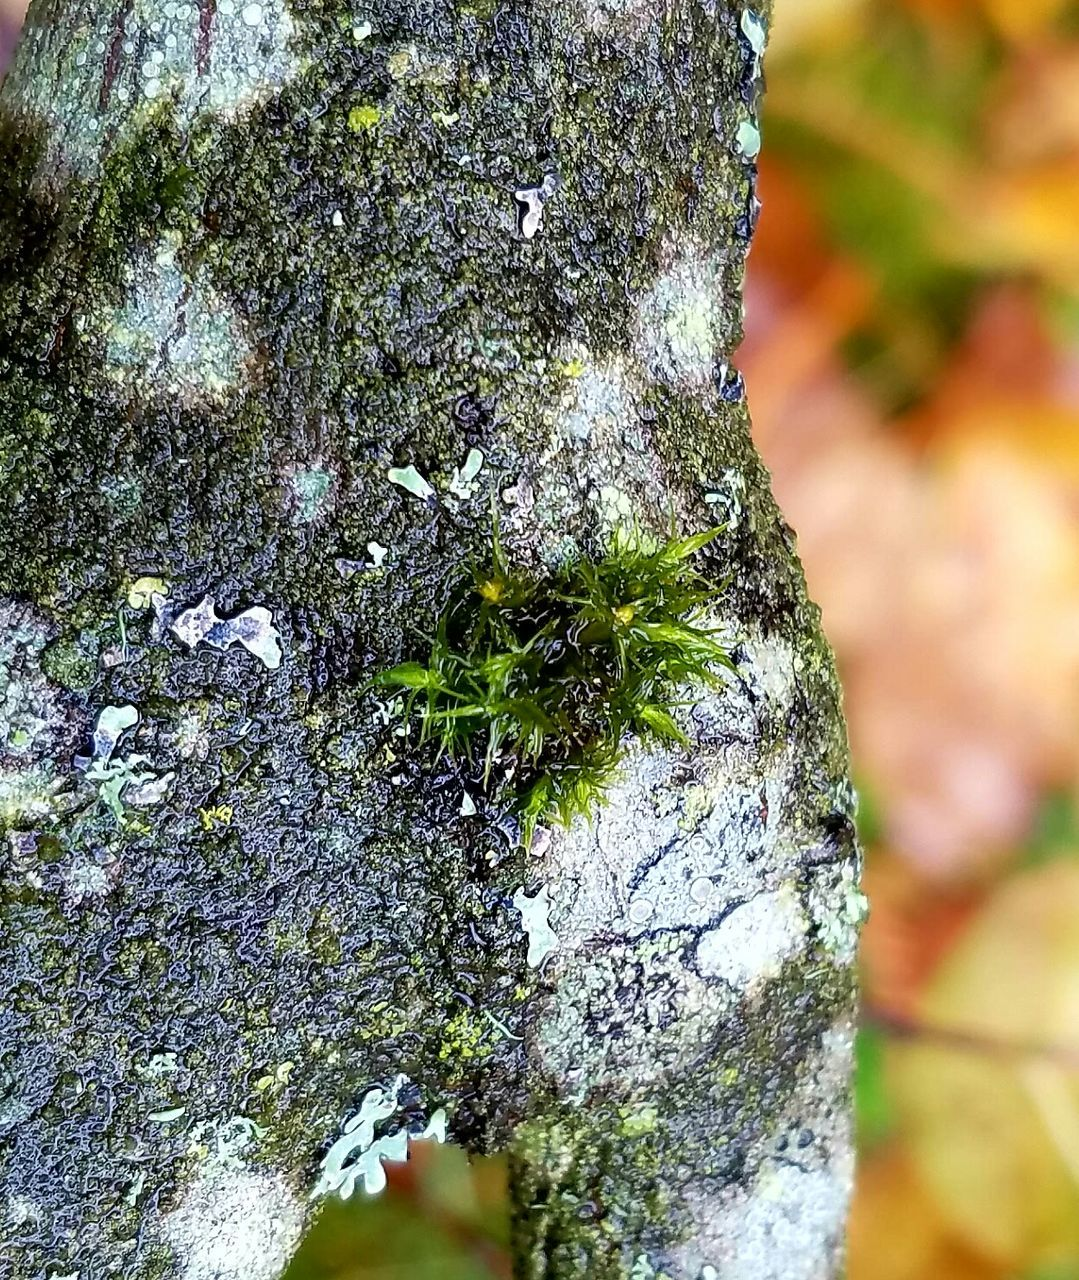 lichen, moss, tree trunk, nature, textured, day, close-up, rough, no people, bark, outdoors, growth, rock - object, tree, beauty in nature, fungus, tree stump, fragility